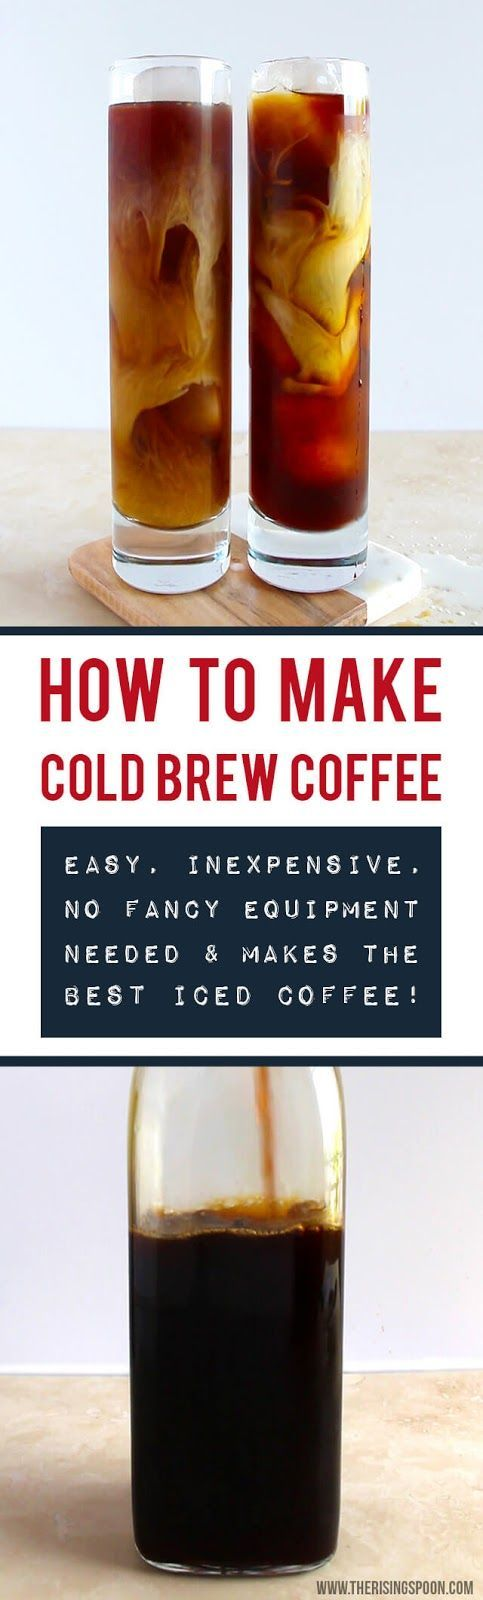 Learn how to make the best cold brew coffee at home using two simple ingredients and a few household items likely sitting in your kitchen right now. This cold infusion method produces gloriously smooth, strong coffee that's less acidic, not bitter, and ta